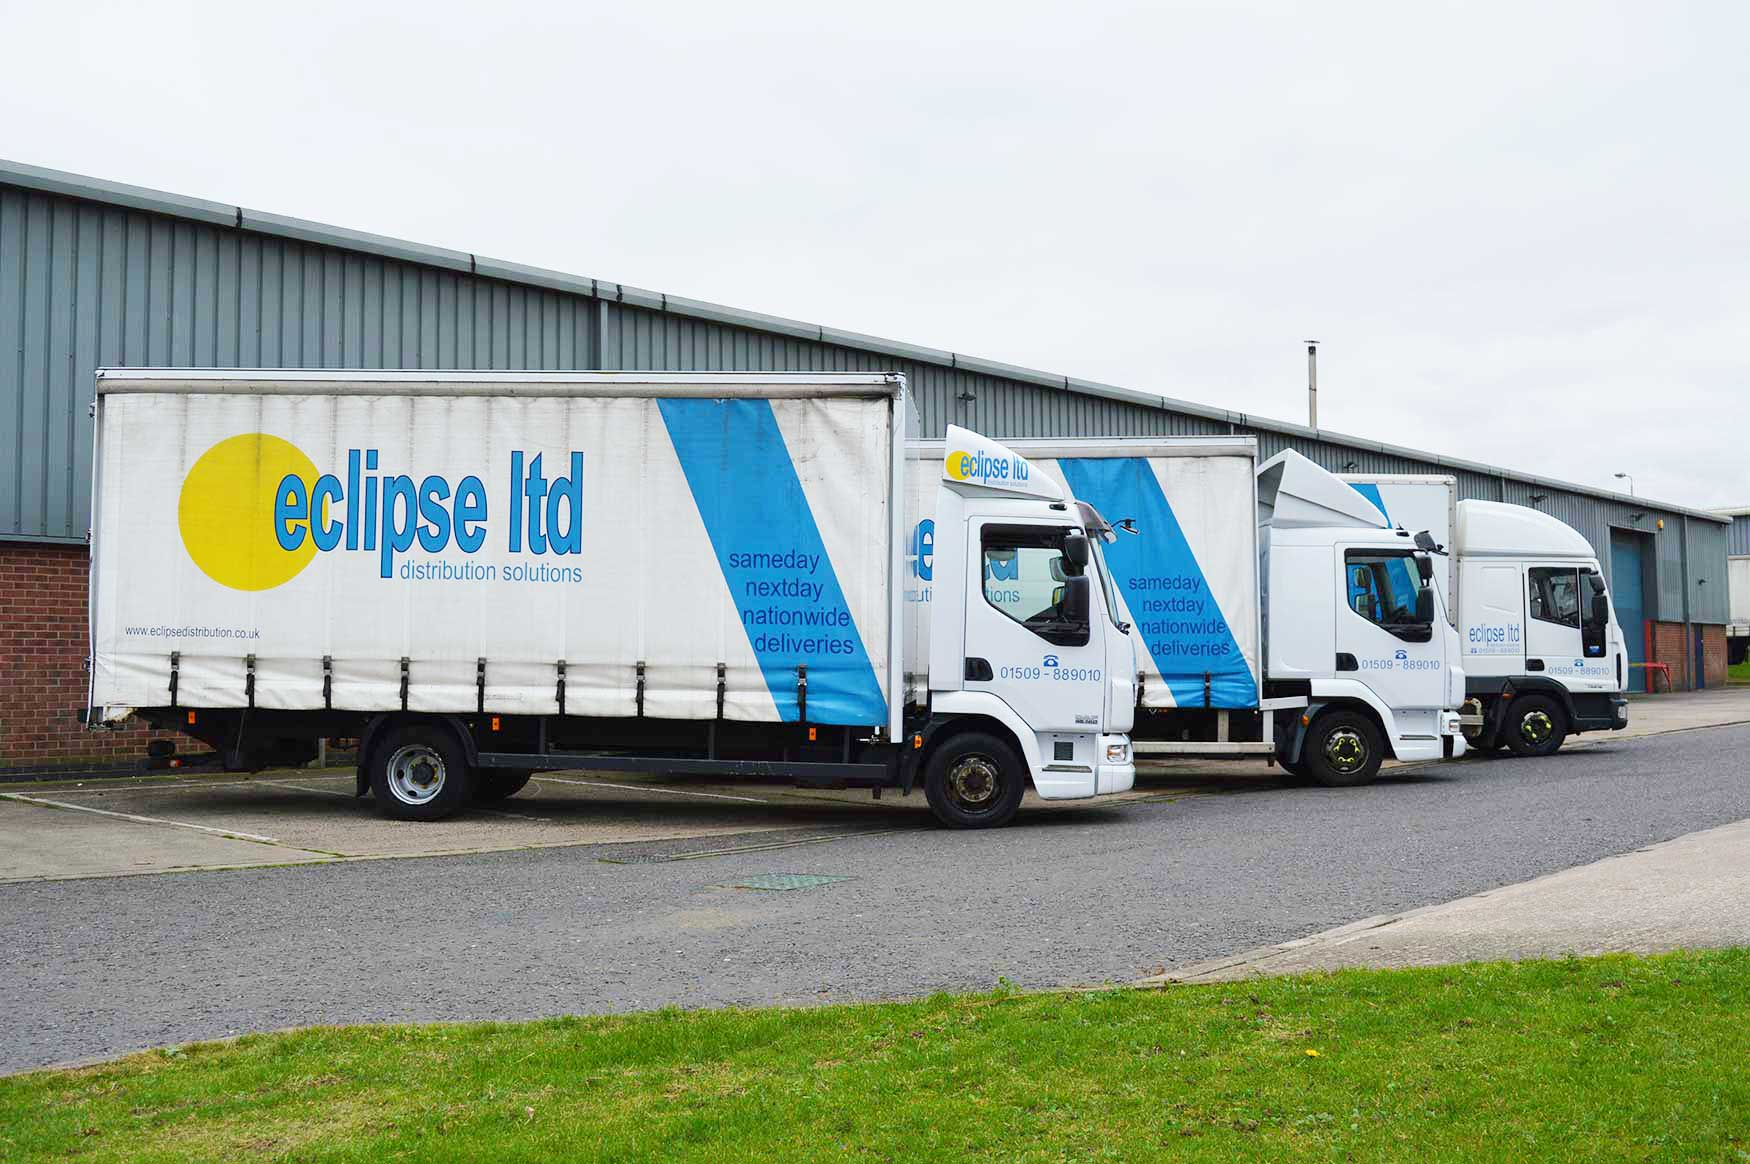 An image showing three Eclipse Distribution Solutions Ltd lorries parked outside.